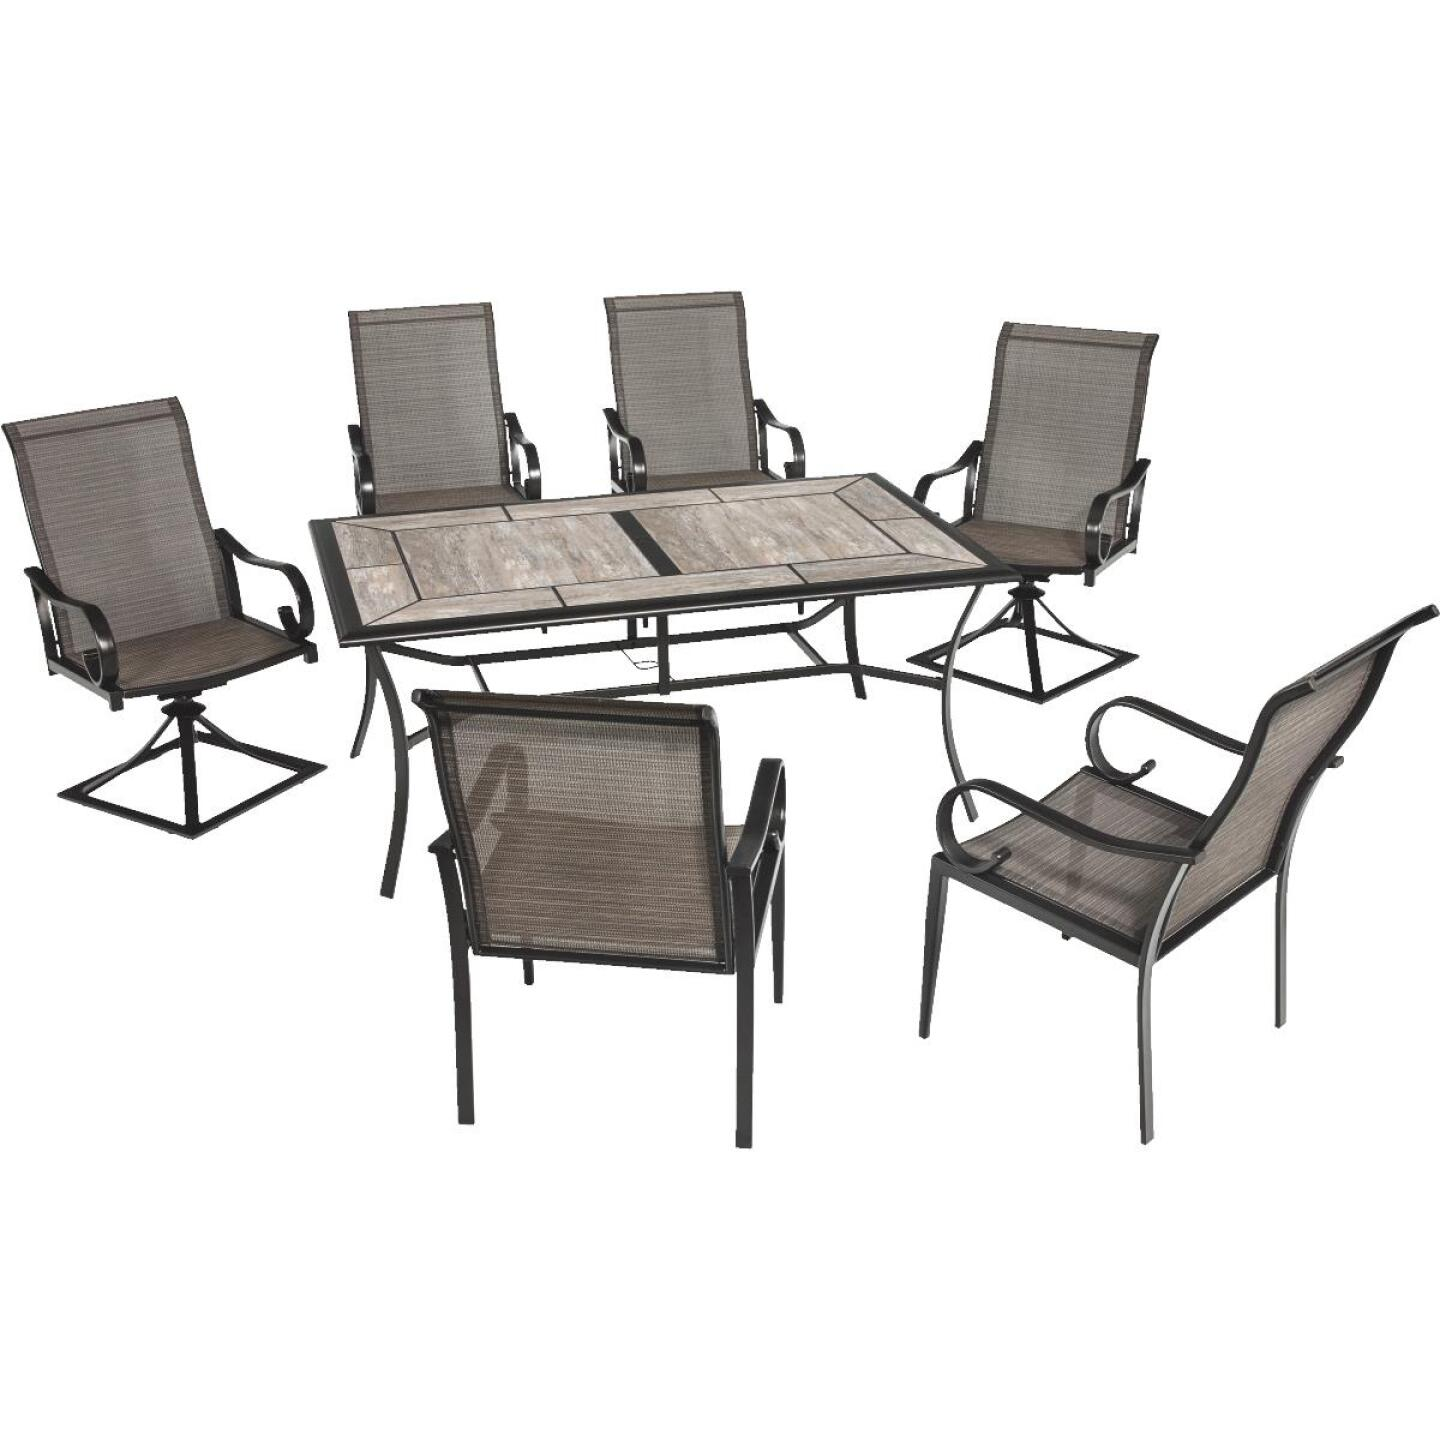 Outdoor Expressions Berkshire 7-Piece Dining Set Image 43